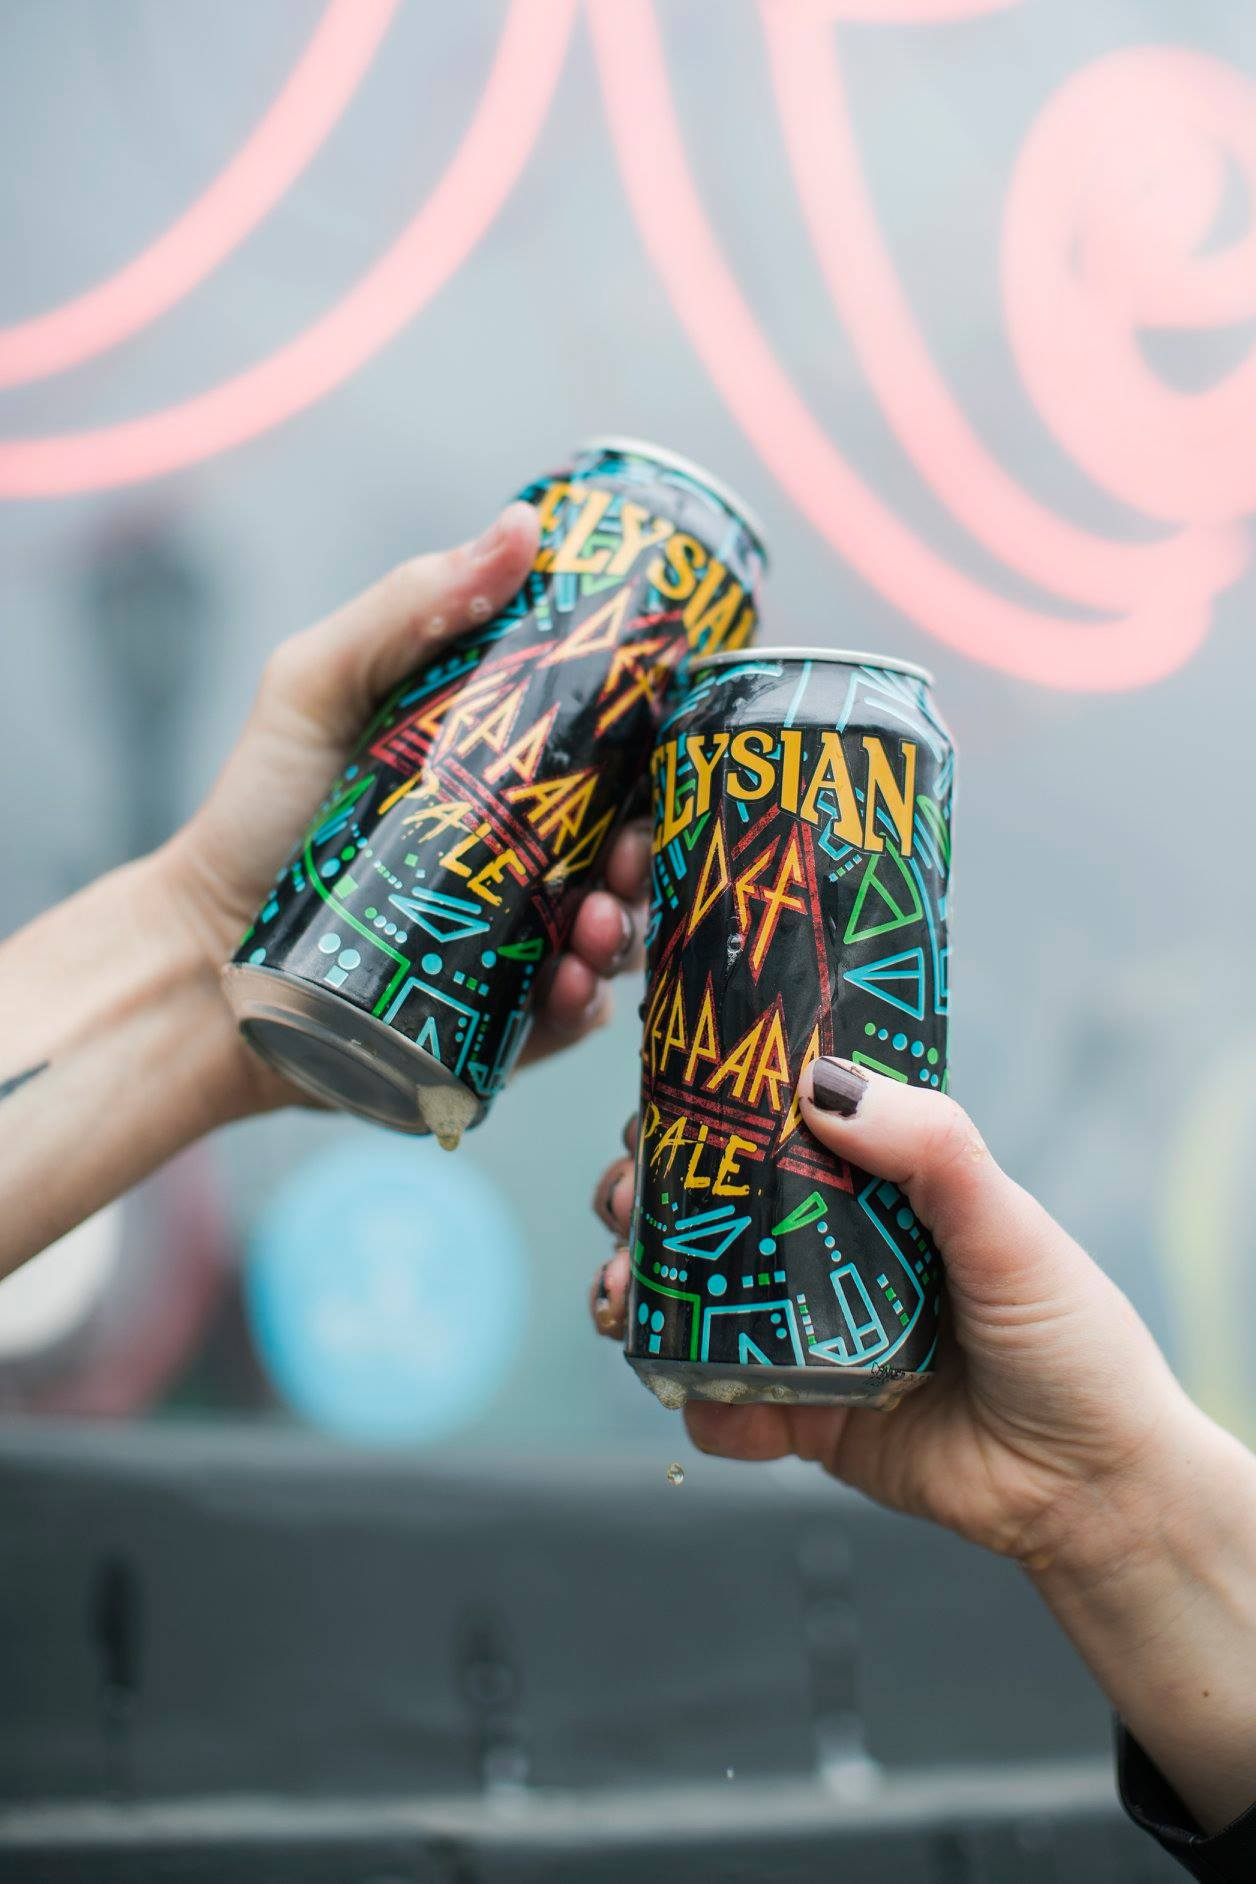 b624bc4c239 The beer can be experienced through draught or 16oz cans. The can was  designed in tribute to the 30th anniversay of Def Leppard s landmark album